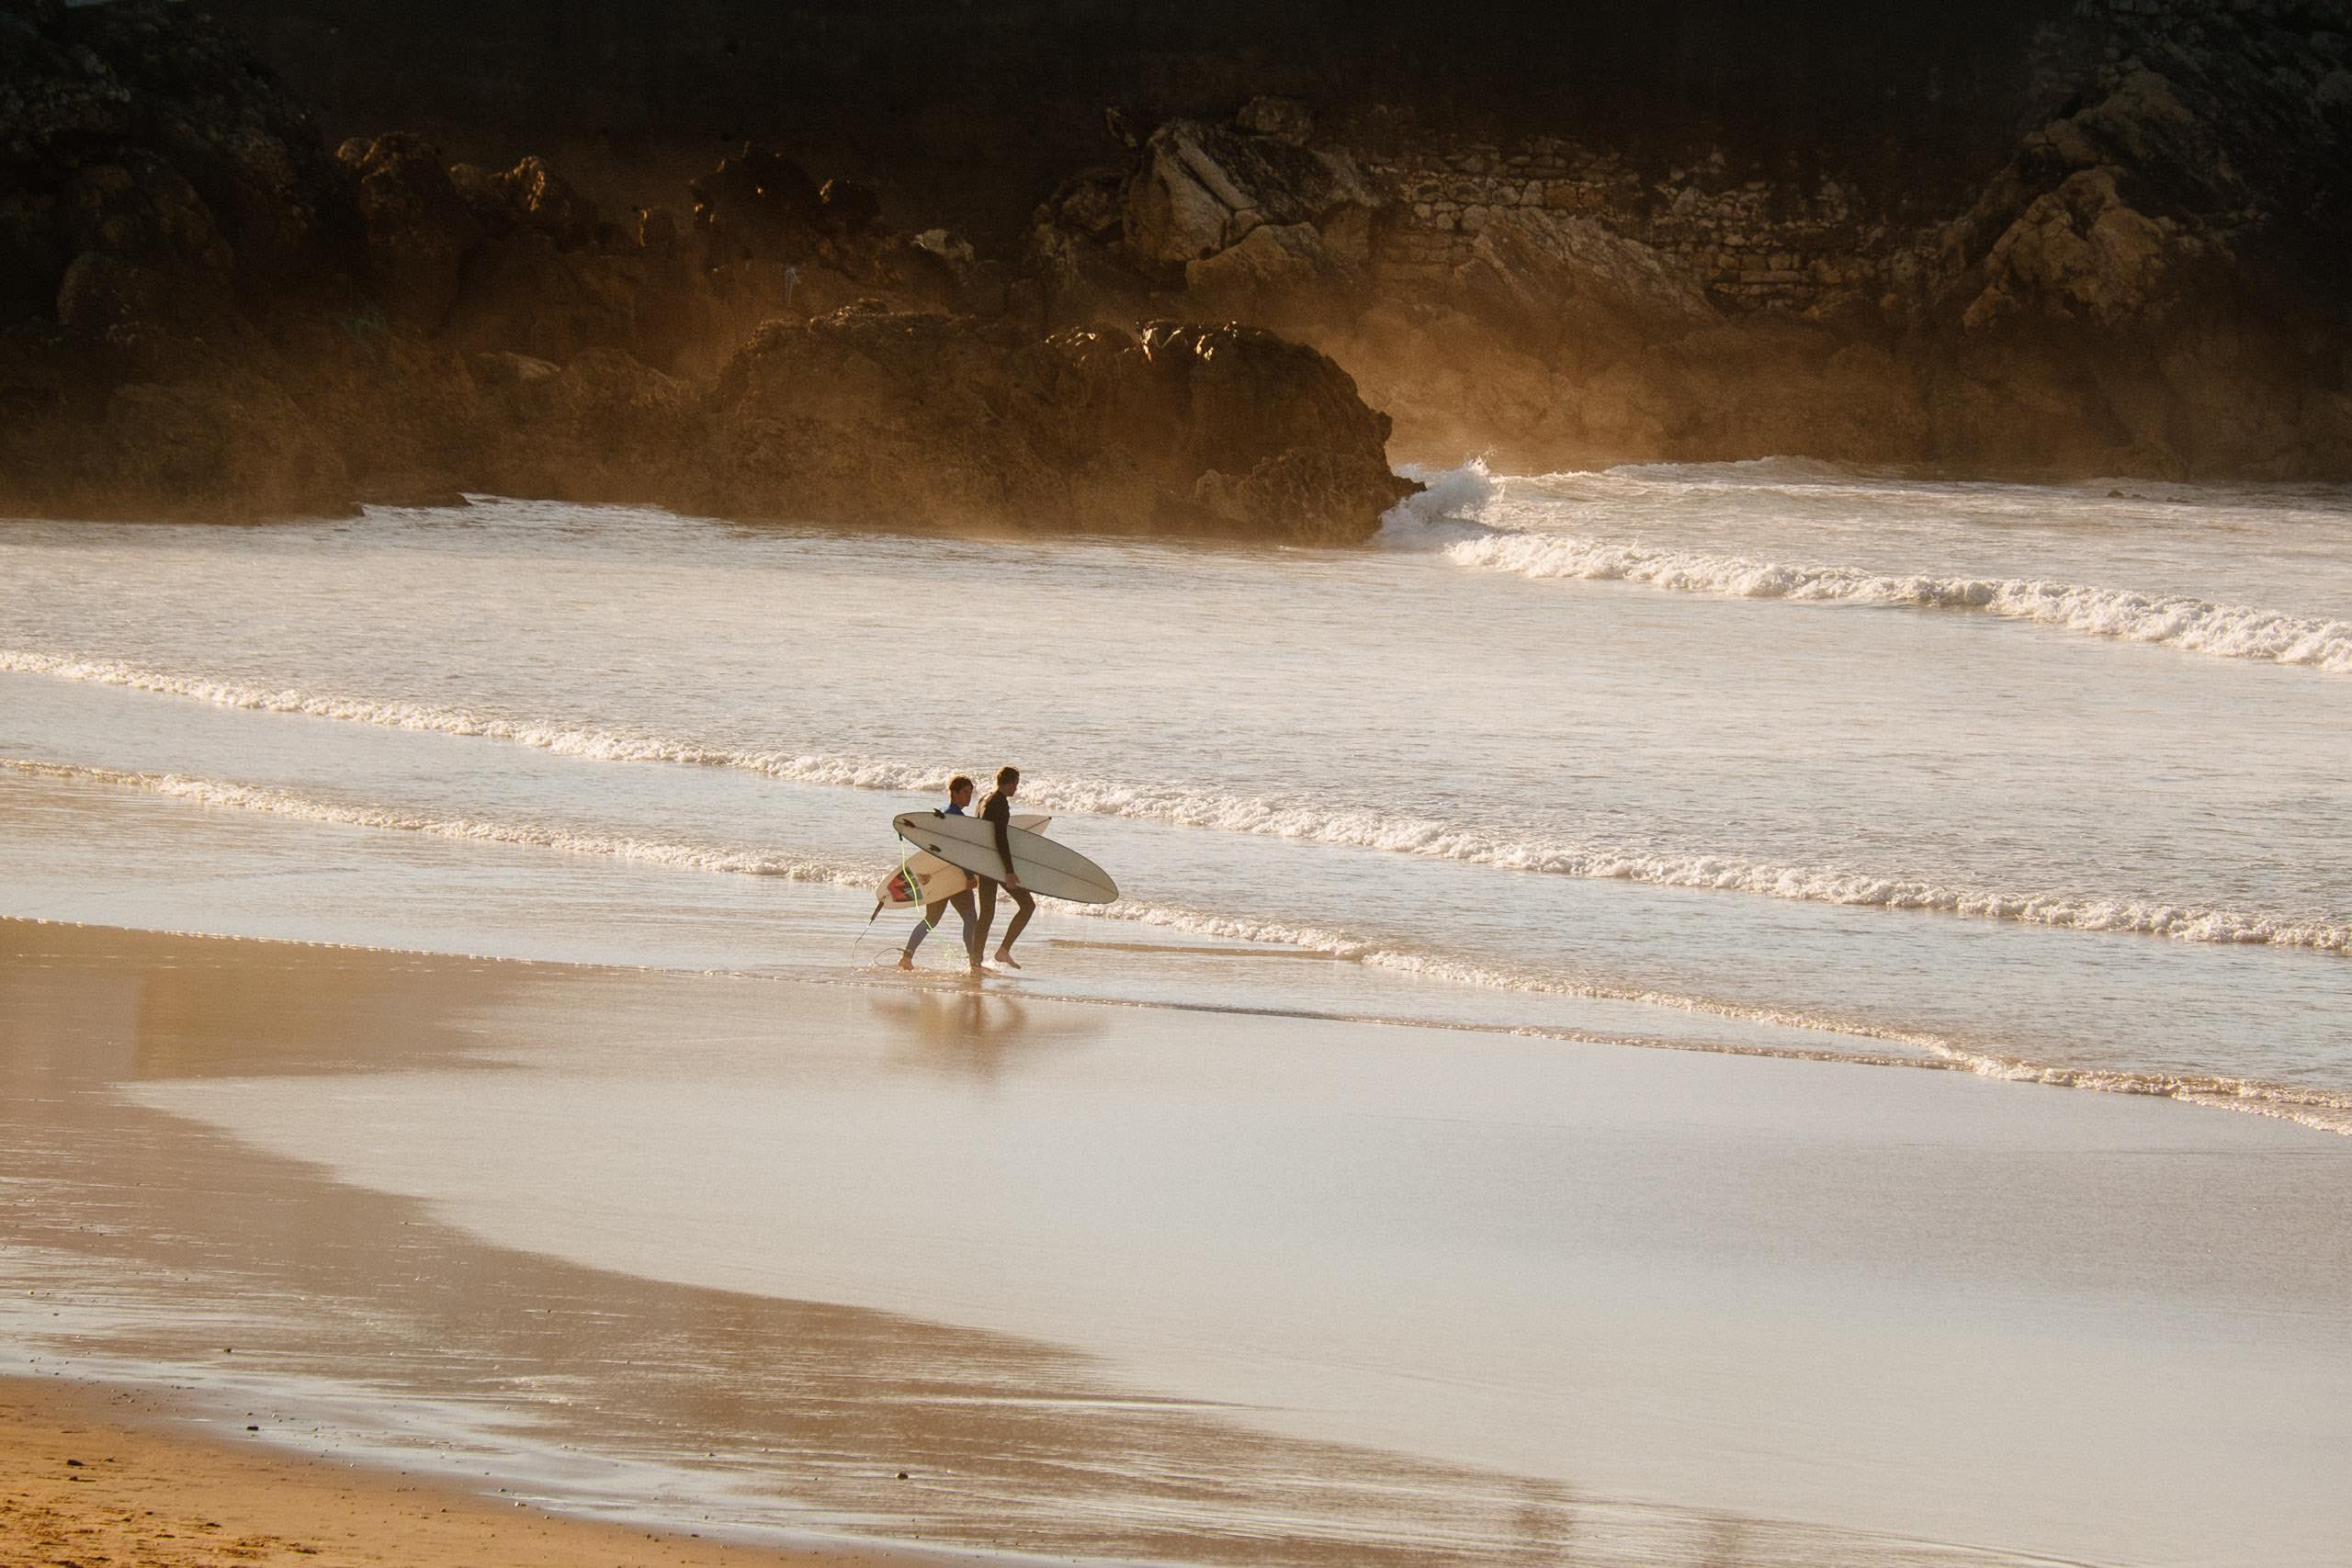 Surfing in Peniche Portugal